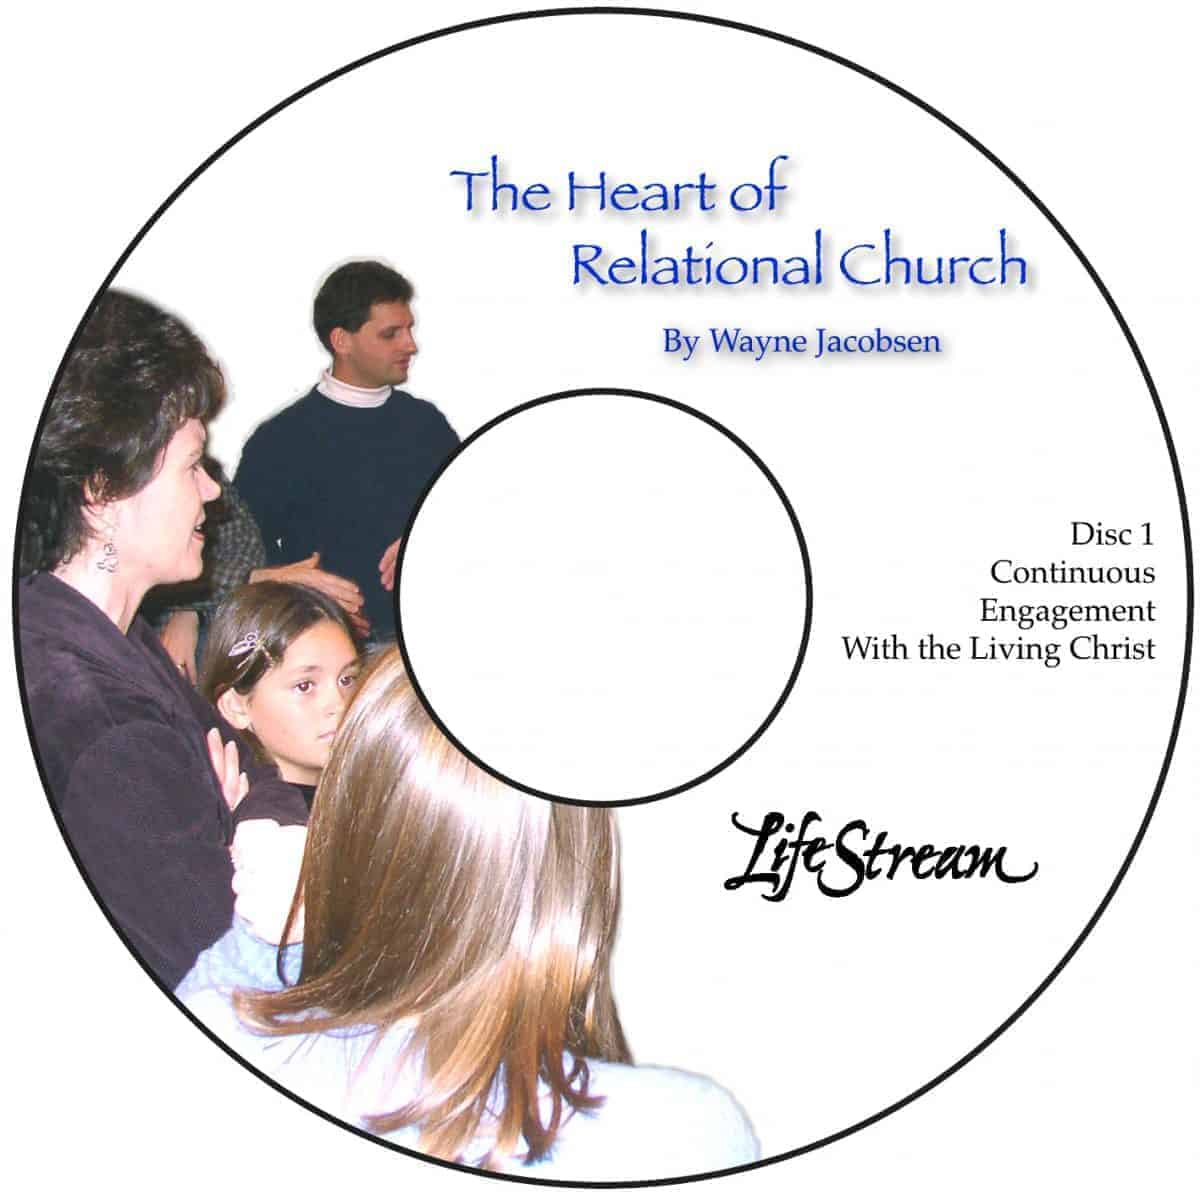 The Heart of the Relational Church